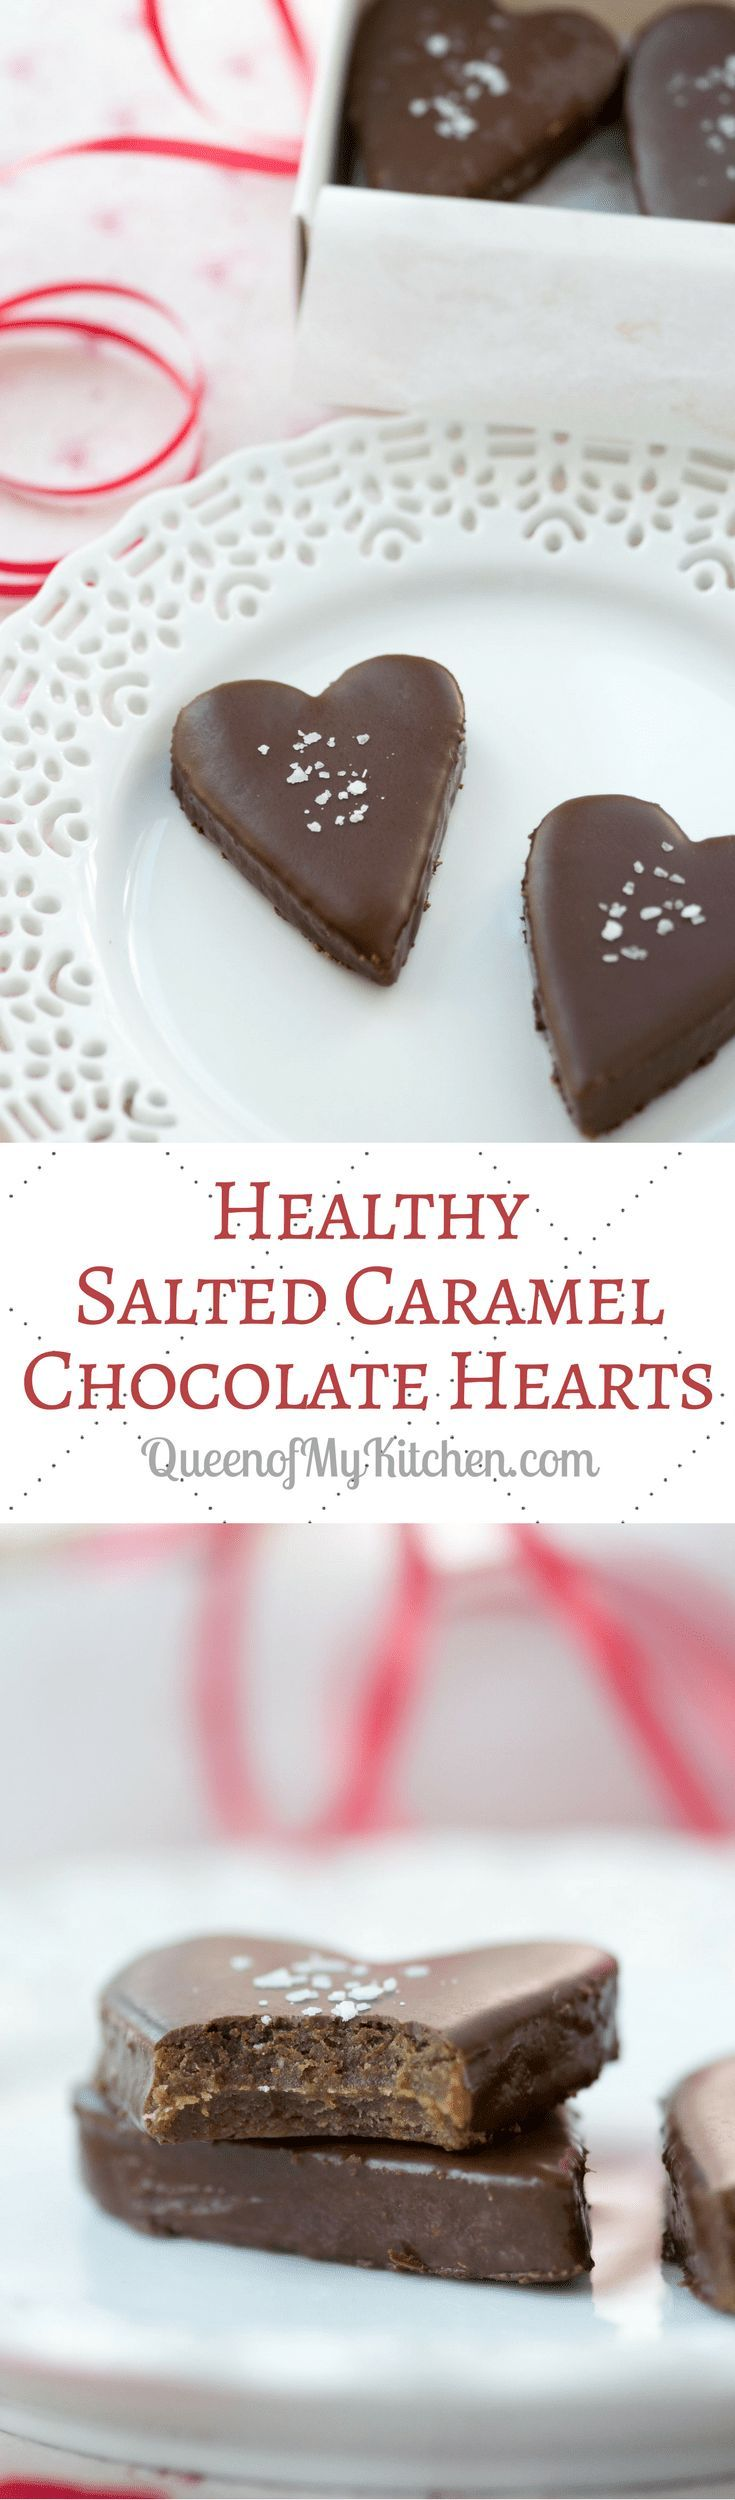 Healthy Salted Caramel Chocolate Hearts. Healthy candy to make for your Valentine! The mock caramel filling is free of refined sugar. | QueenofMyKitchen.com